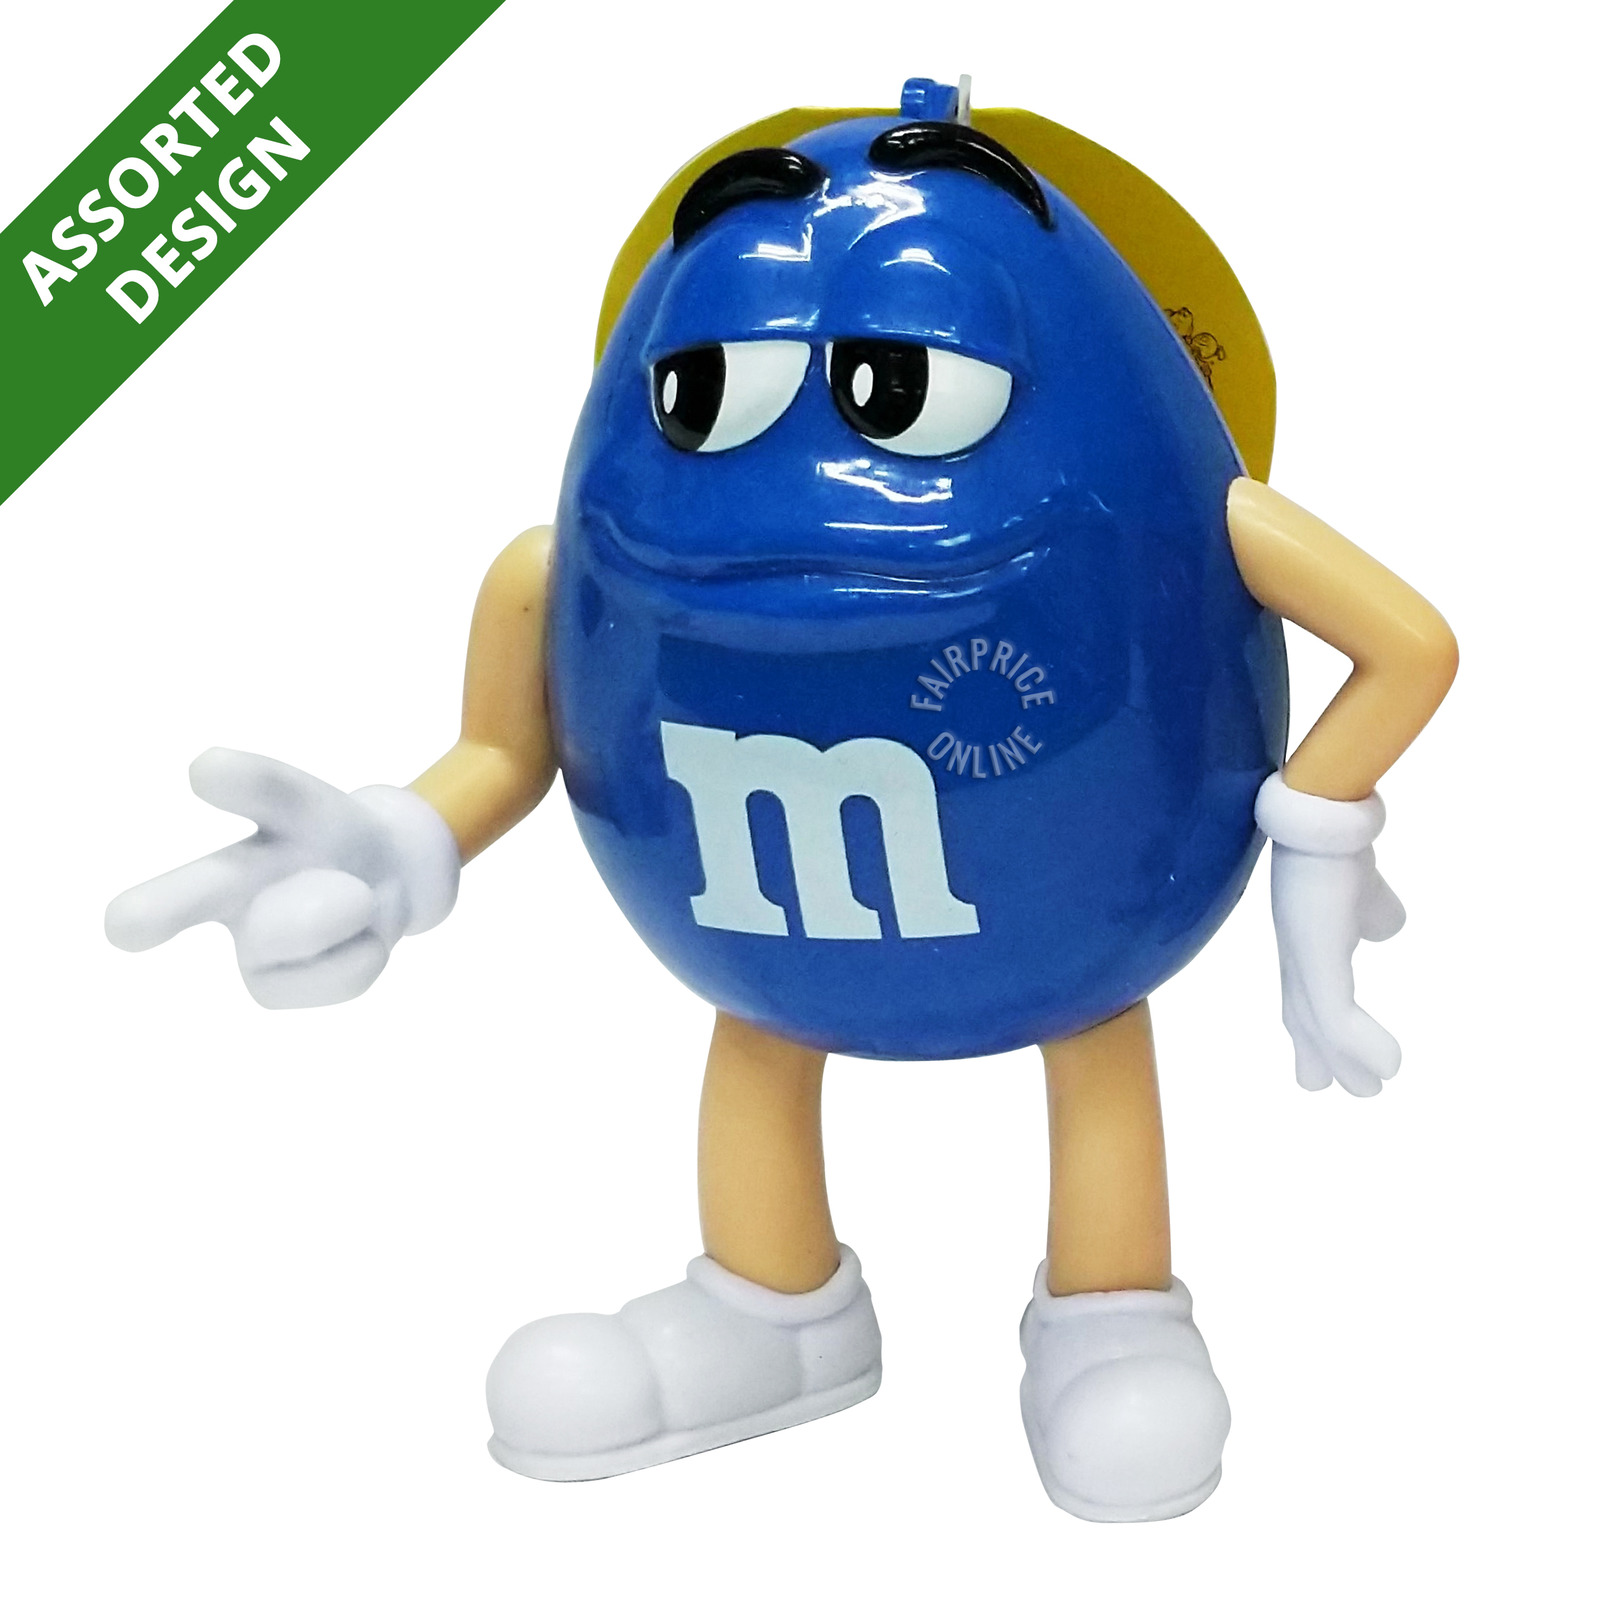 M&M's Chocolate Candies - Character Case (Assorted)